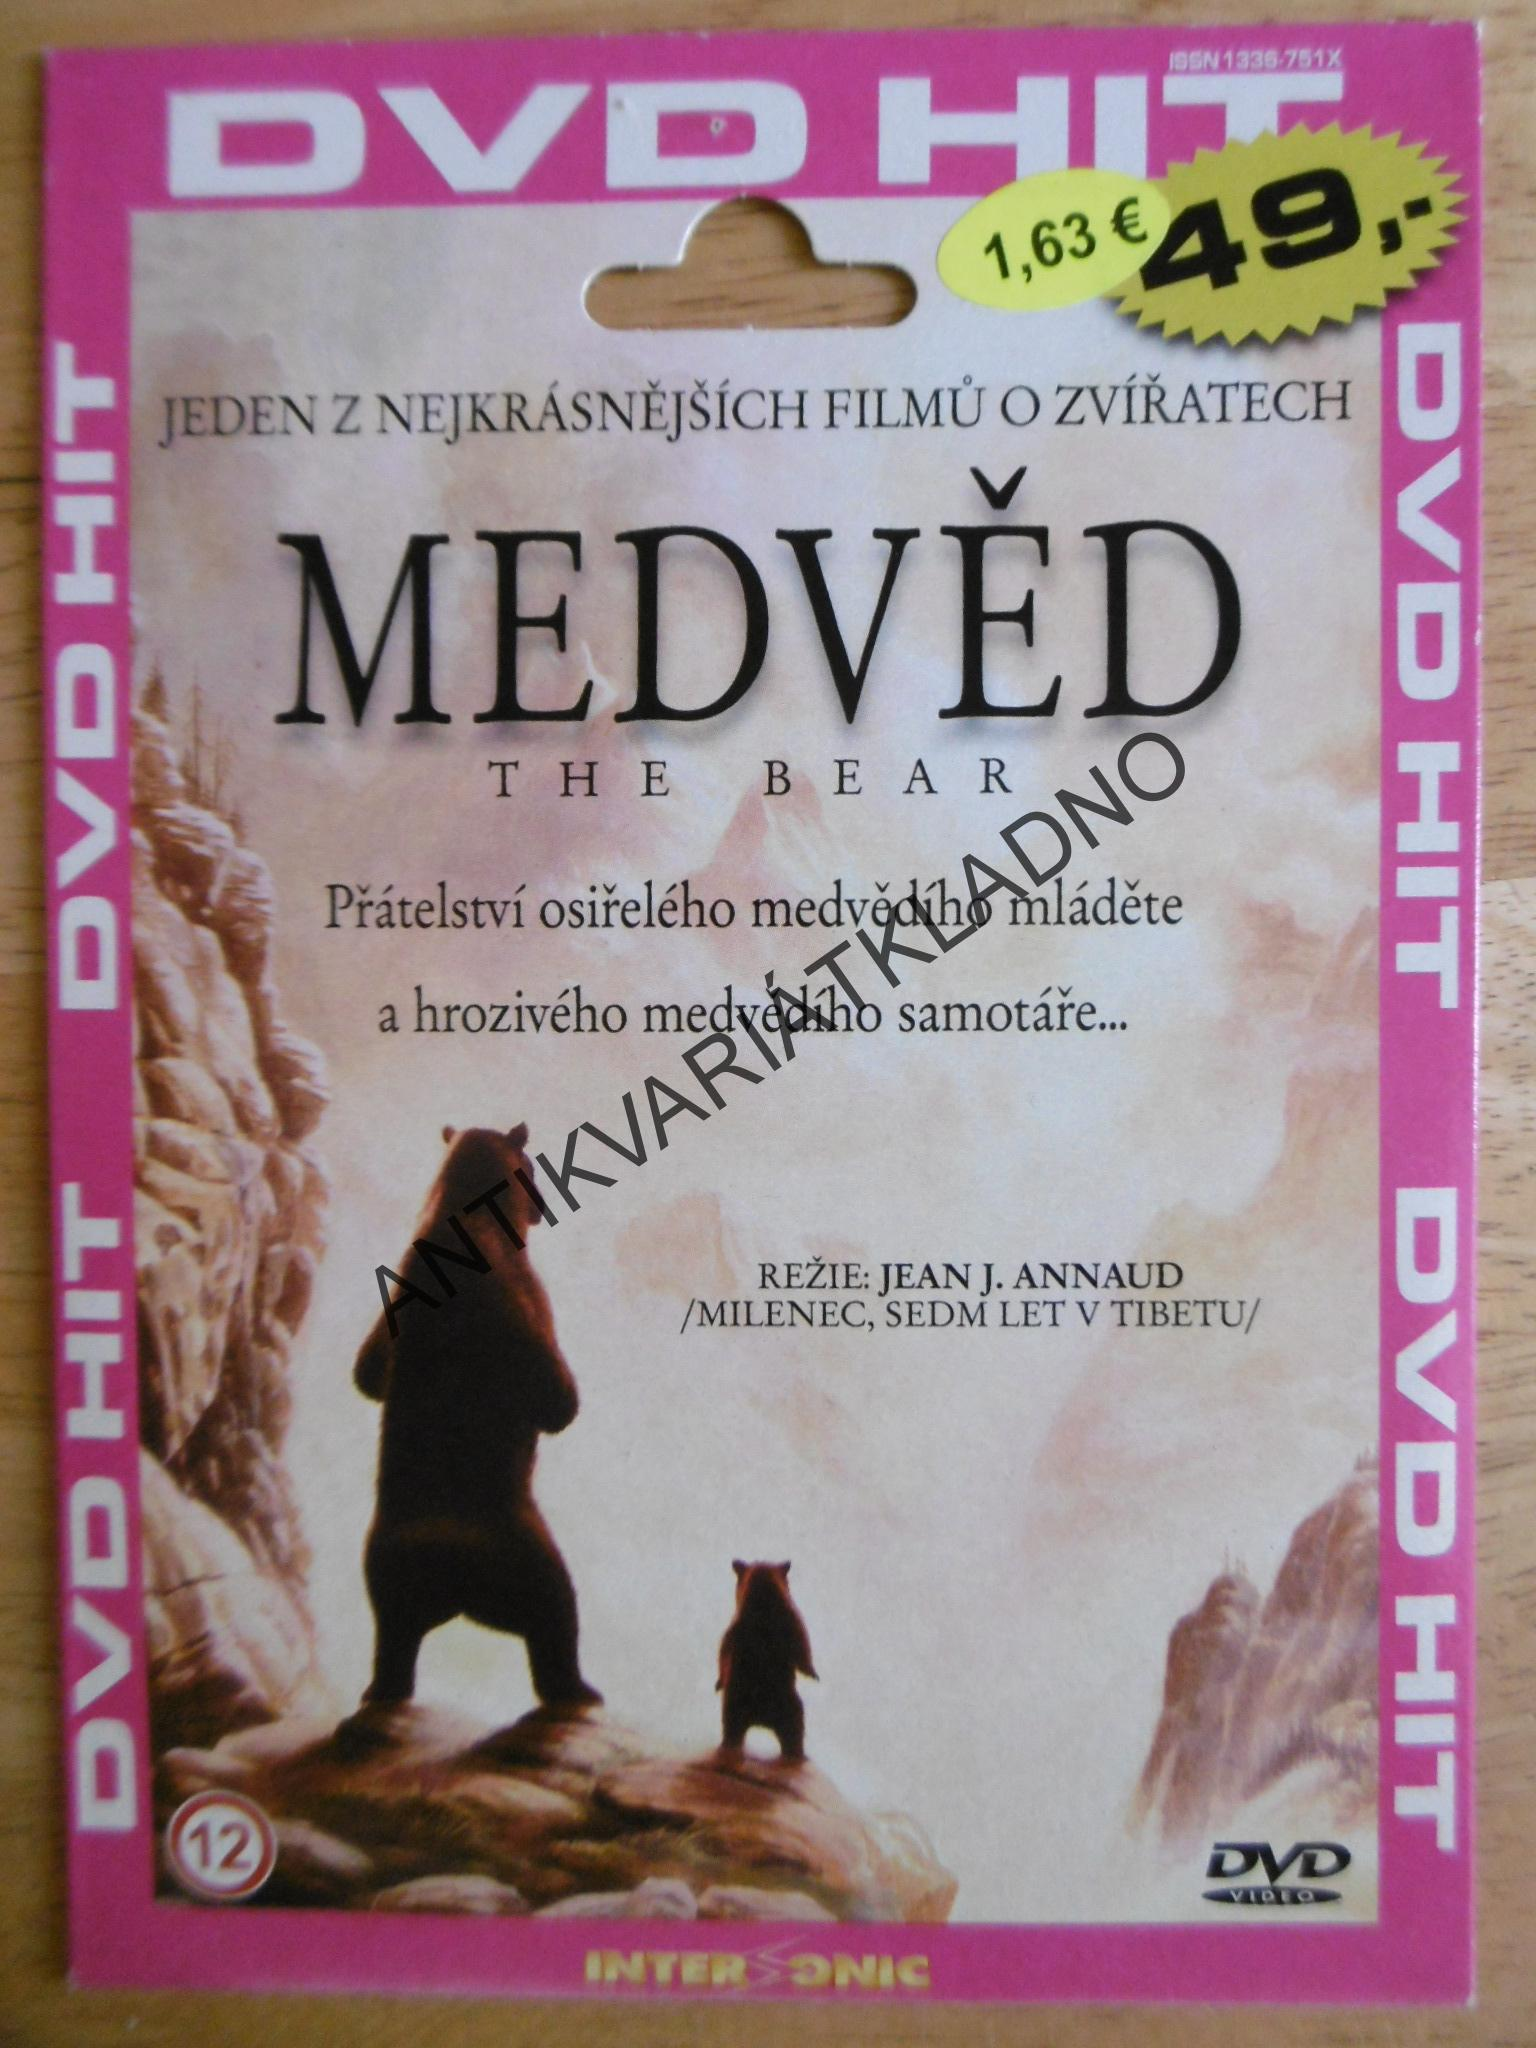 MEDVĚD, THE BEAR, DVD FILM